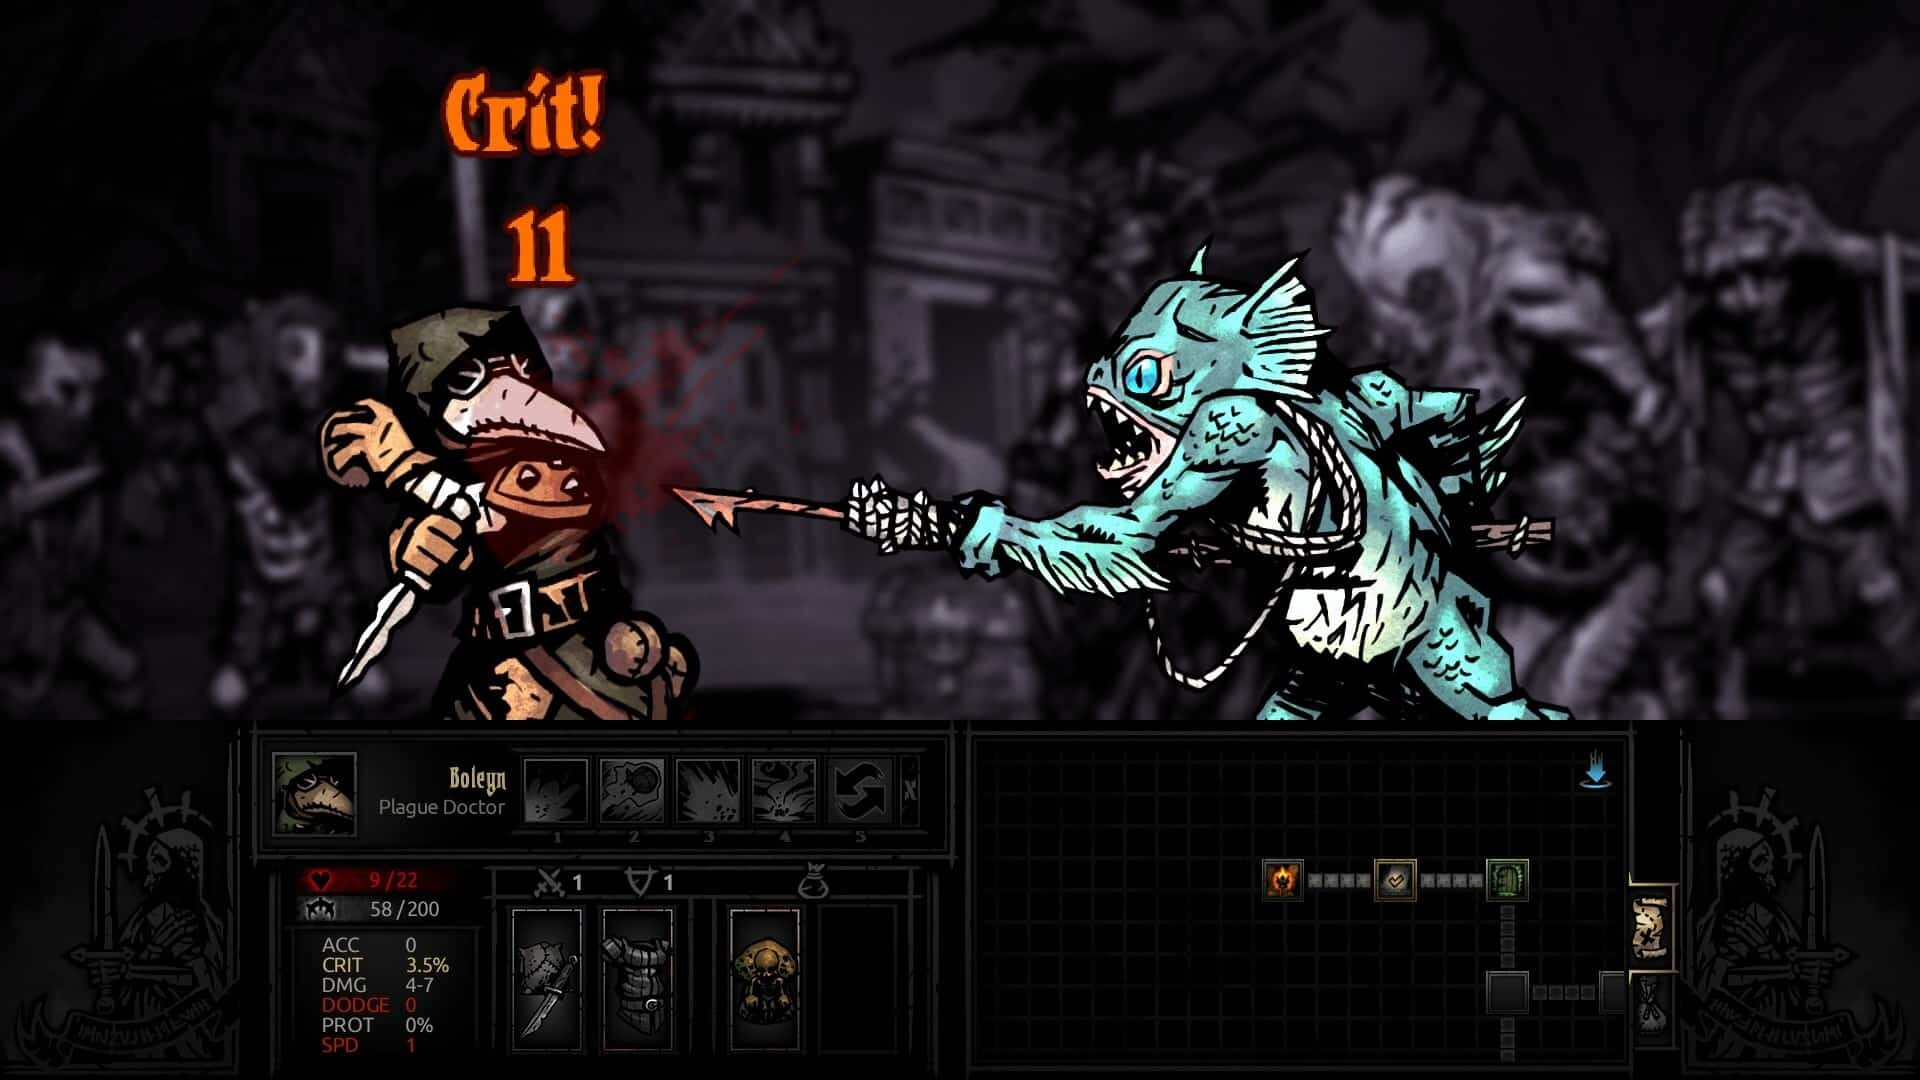 Darkest Dungeon game screenshot, fish monster